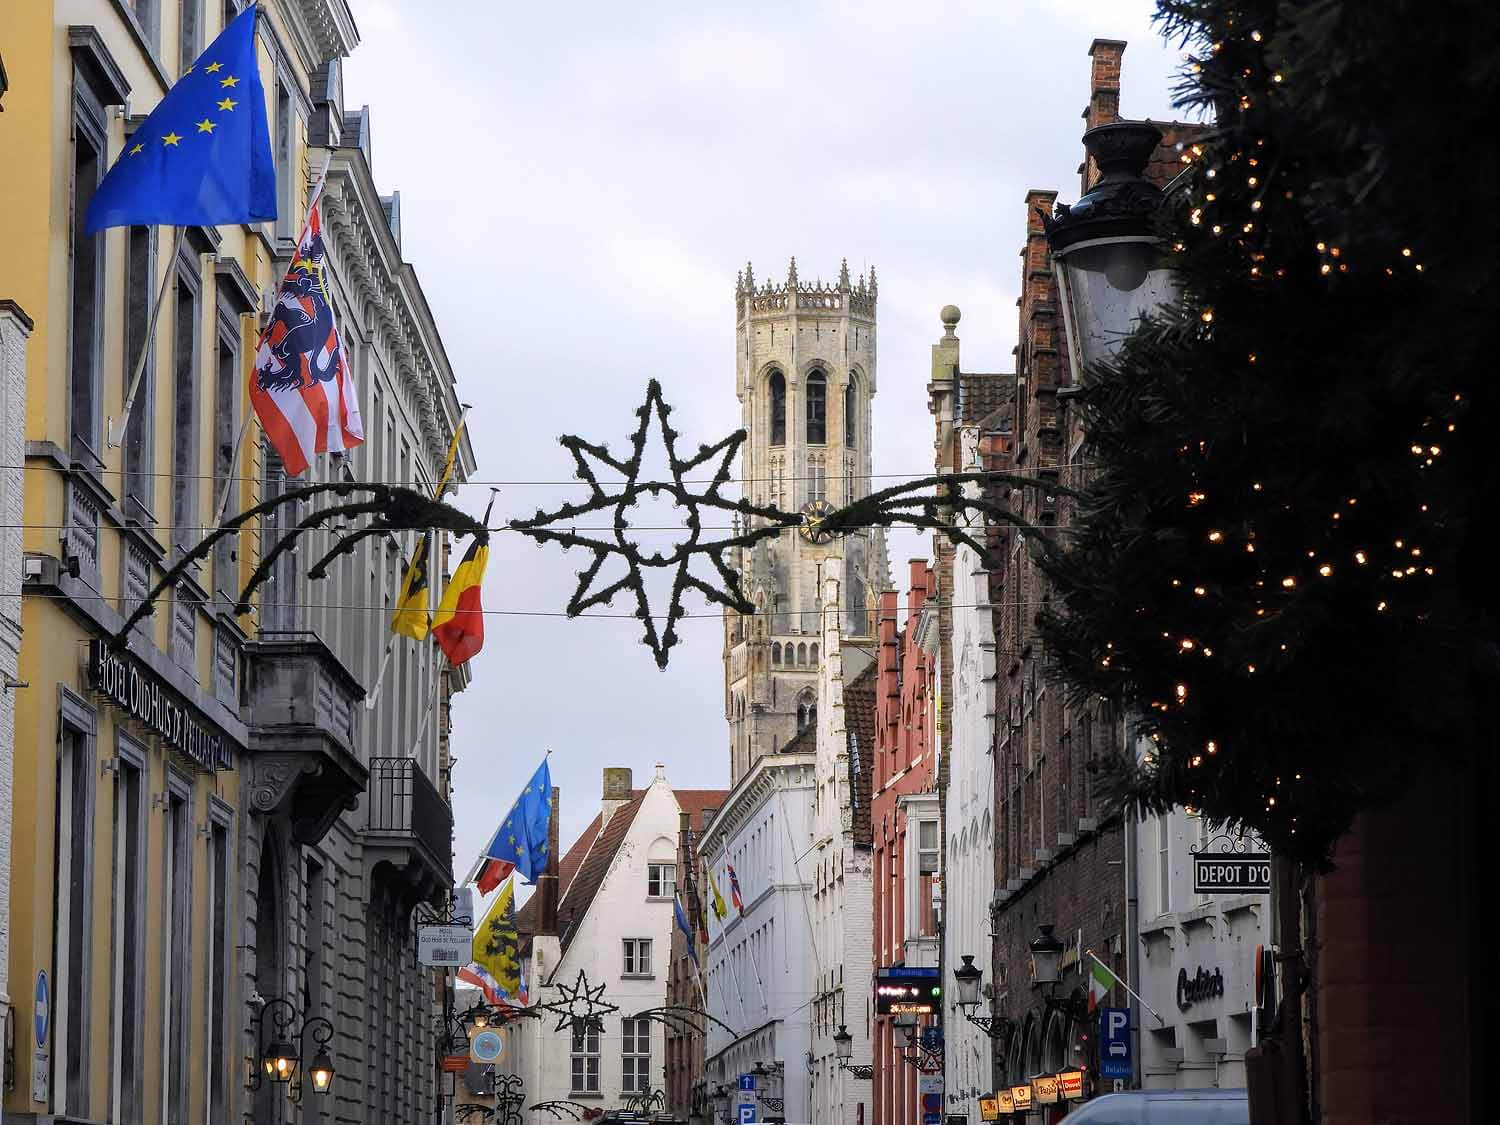 belgium-bruges-church-tower-christmas-decoration.jpg